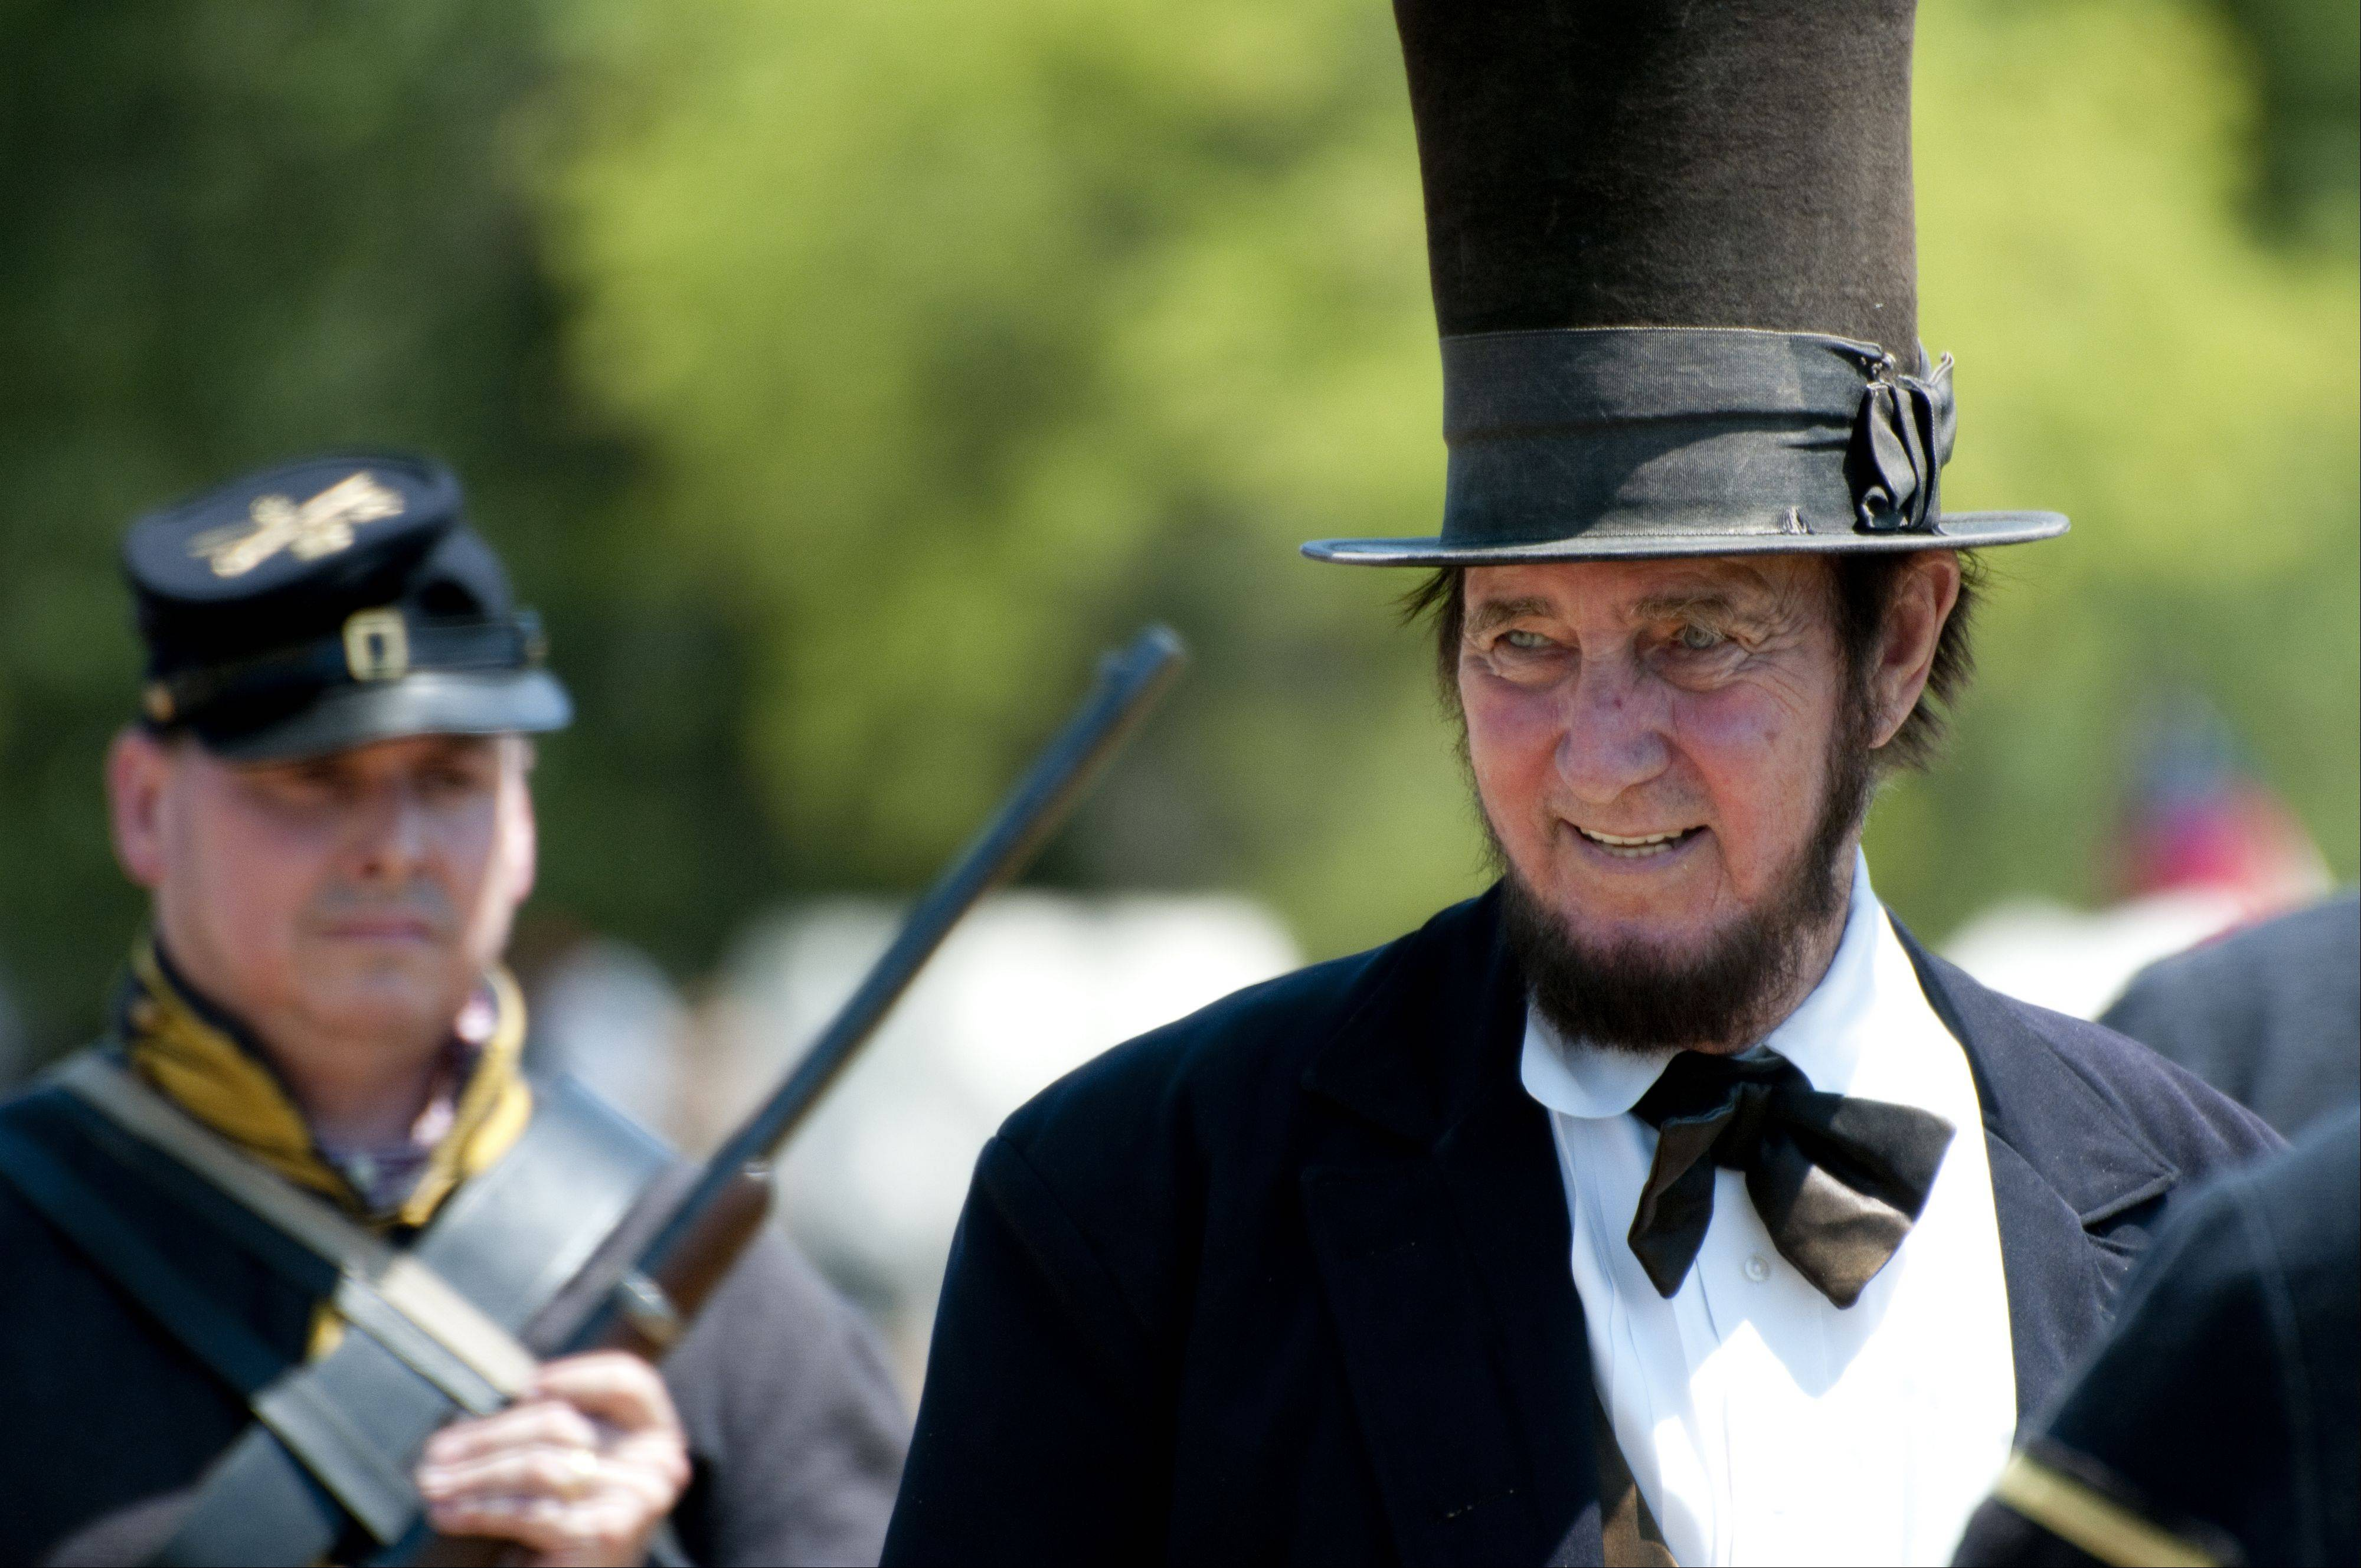 Abraham Lincoln smiles at the crowd as he makes his way to the battle re-enactment at the Civil War Days Sunday in the Lakewood Forest Preserve near Wauconda.